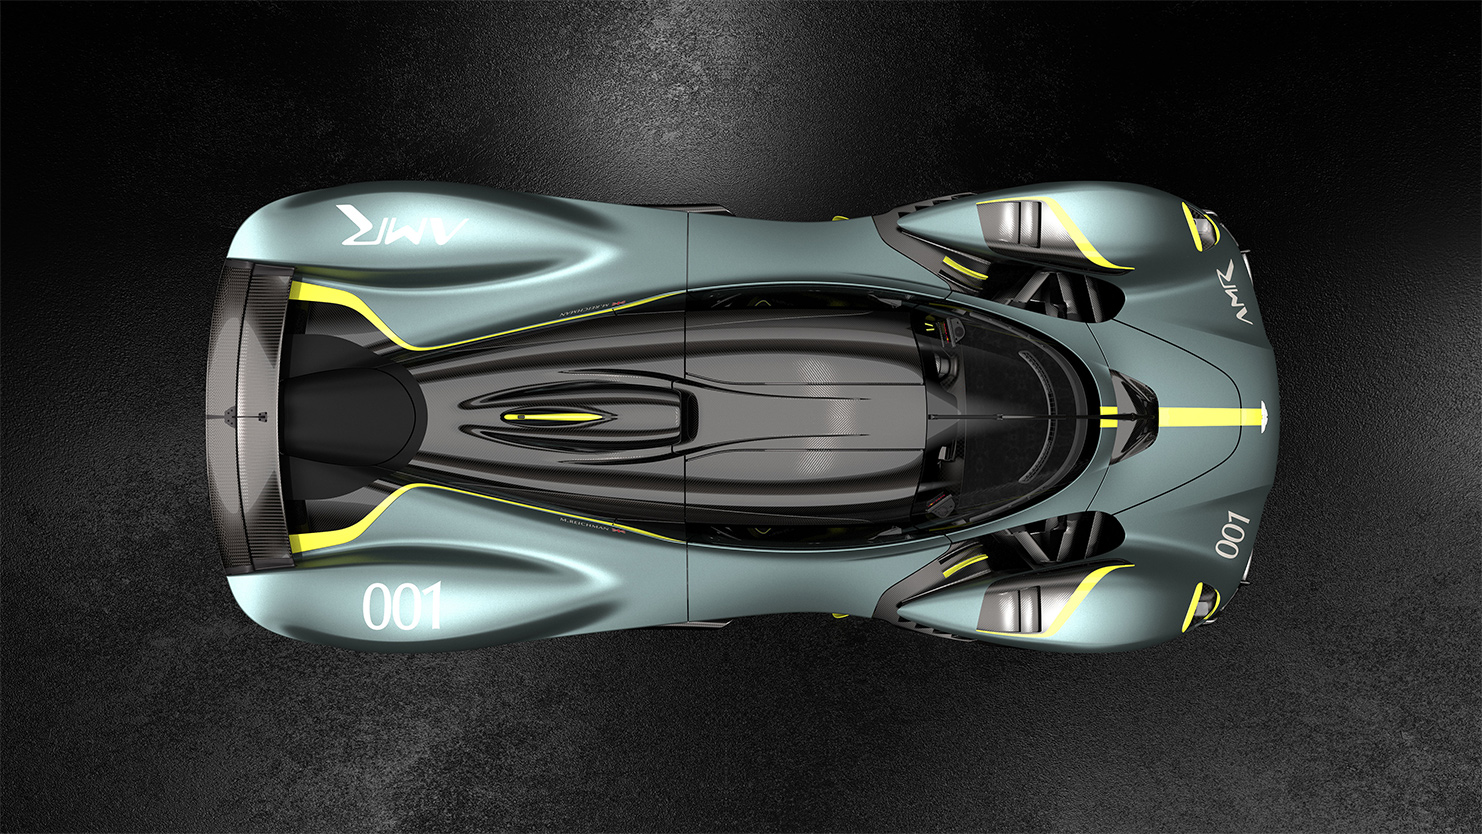 TrackWorthy - Aston Martin Valkyrie with AMR Track Performance Pack - Stirling Green and Lime livery (4)